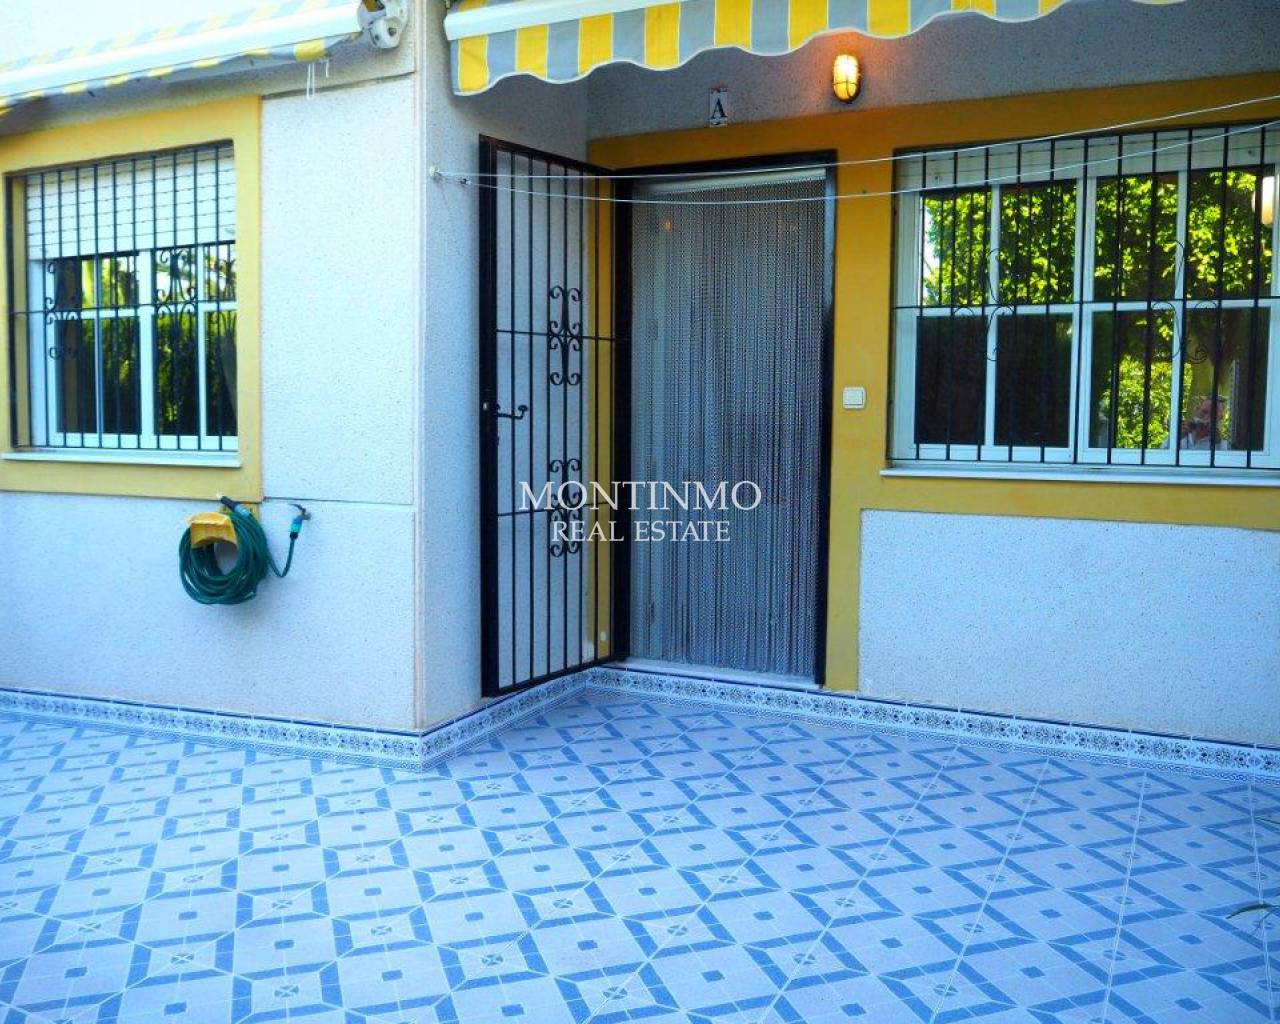 Sale - Appartement - La Mata - Torreblanca